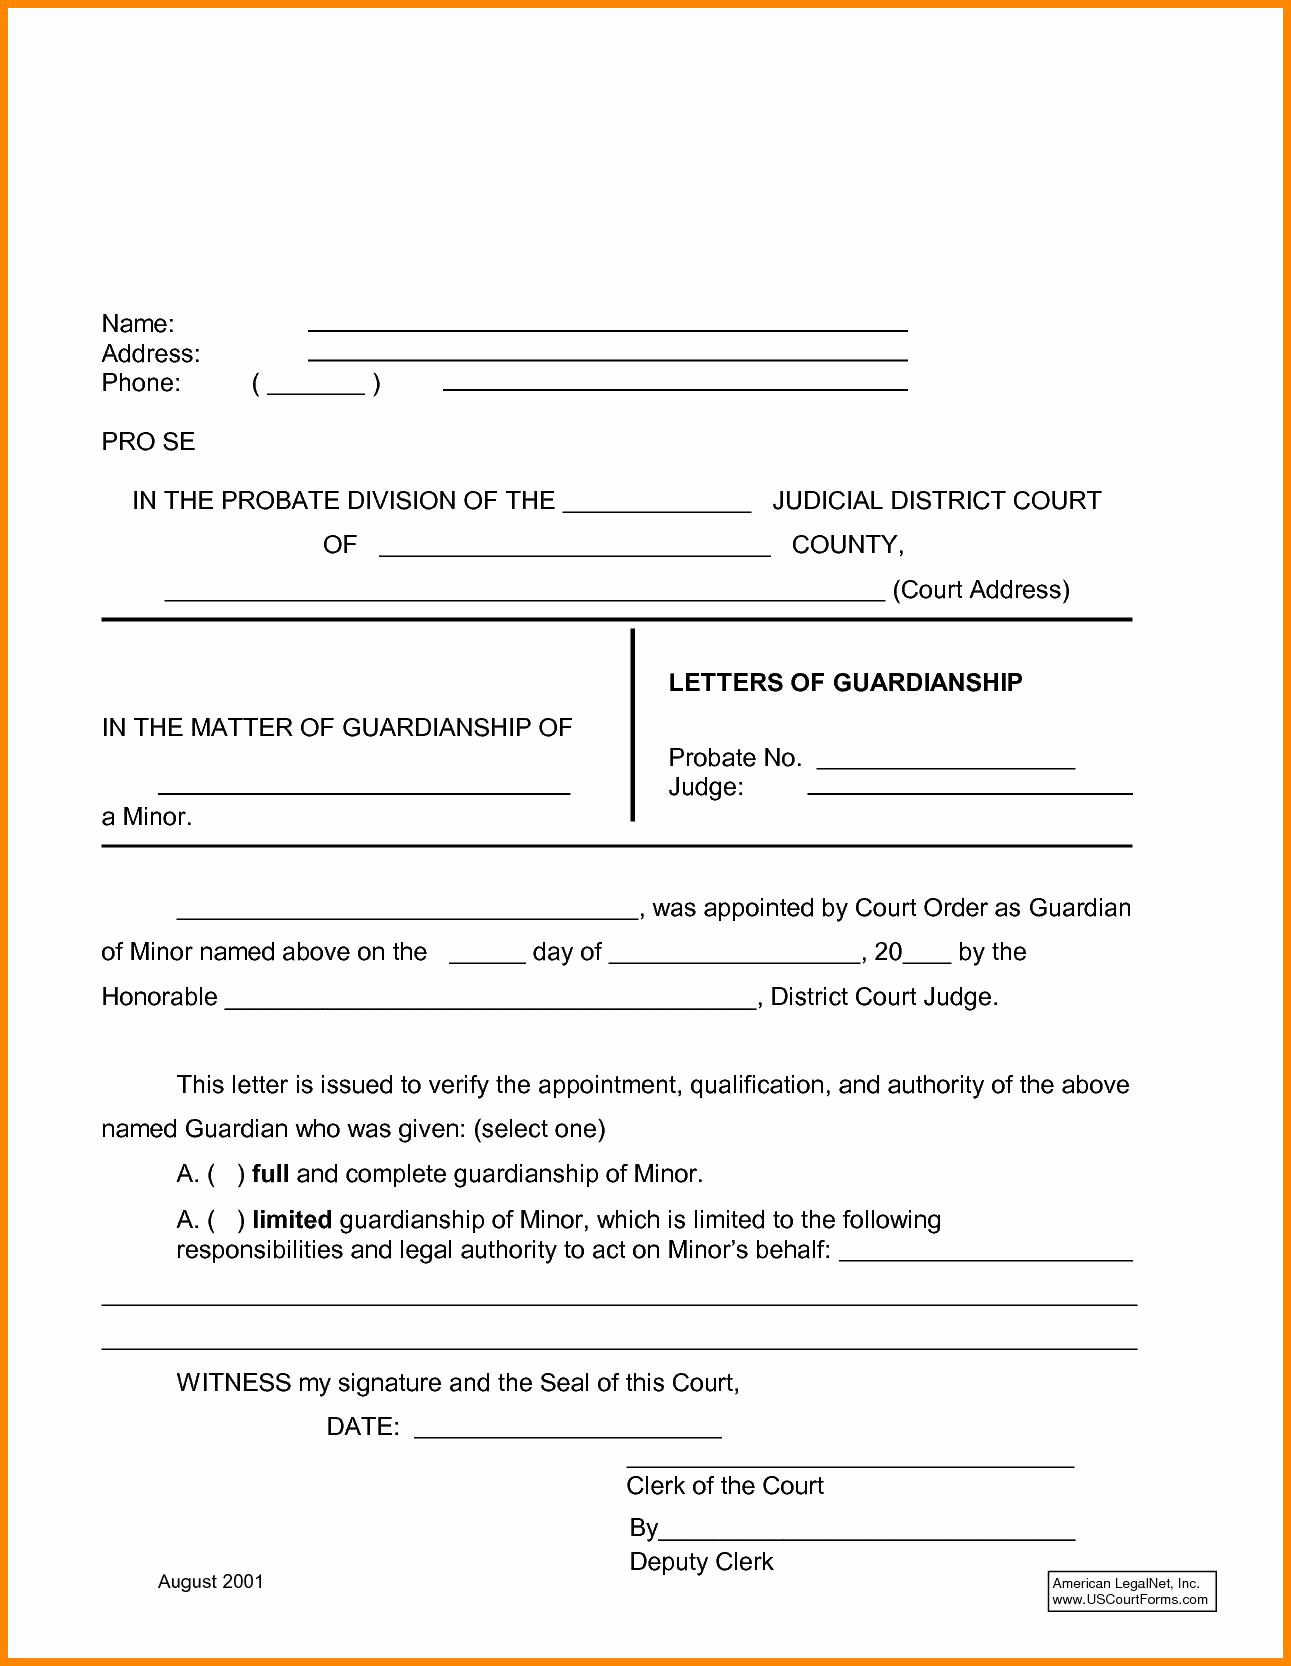 temporary custody letter template Collection-temporary custody letter template 3-i